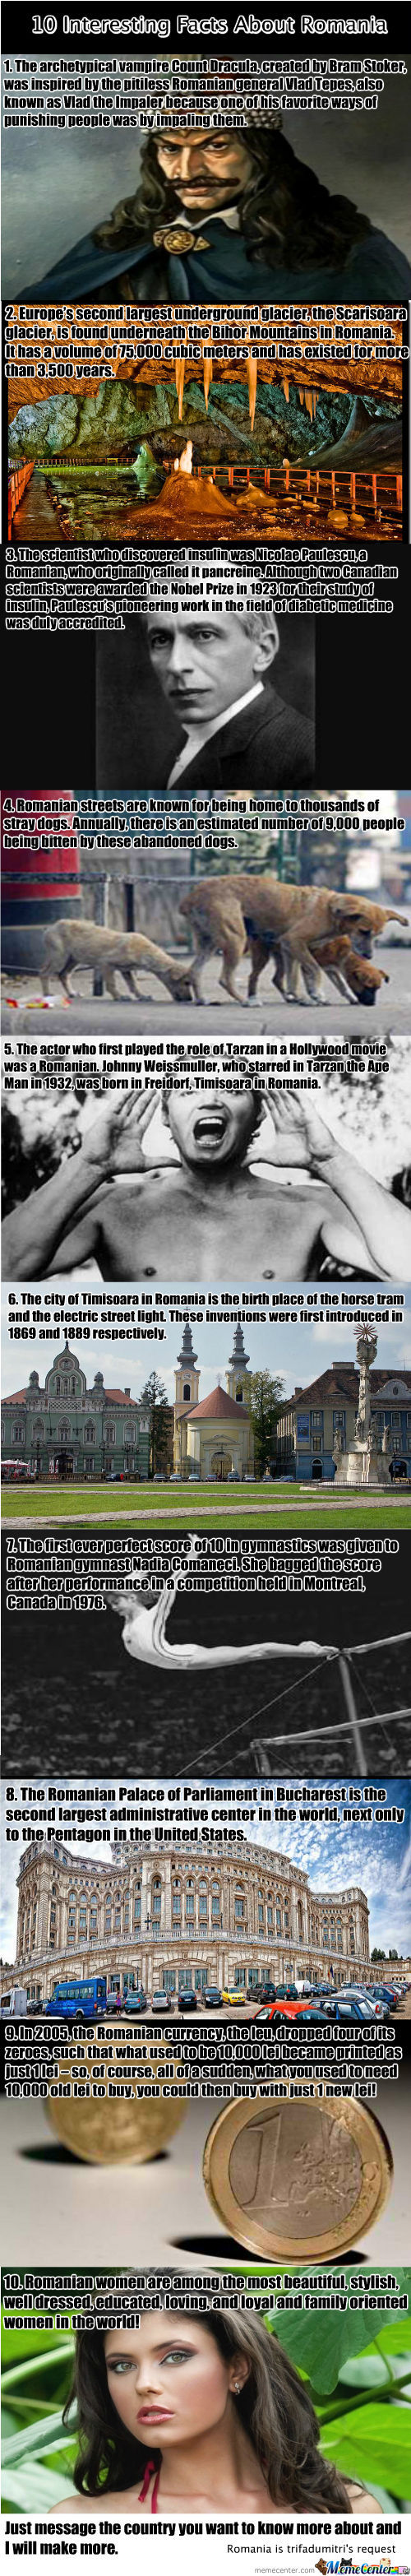 10 Interesting Facts About Romania